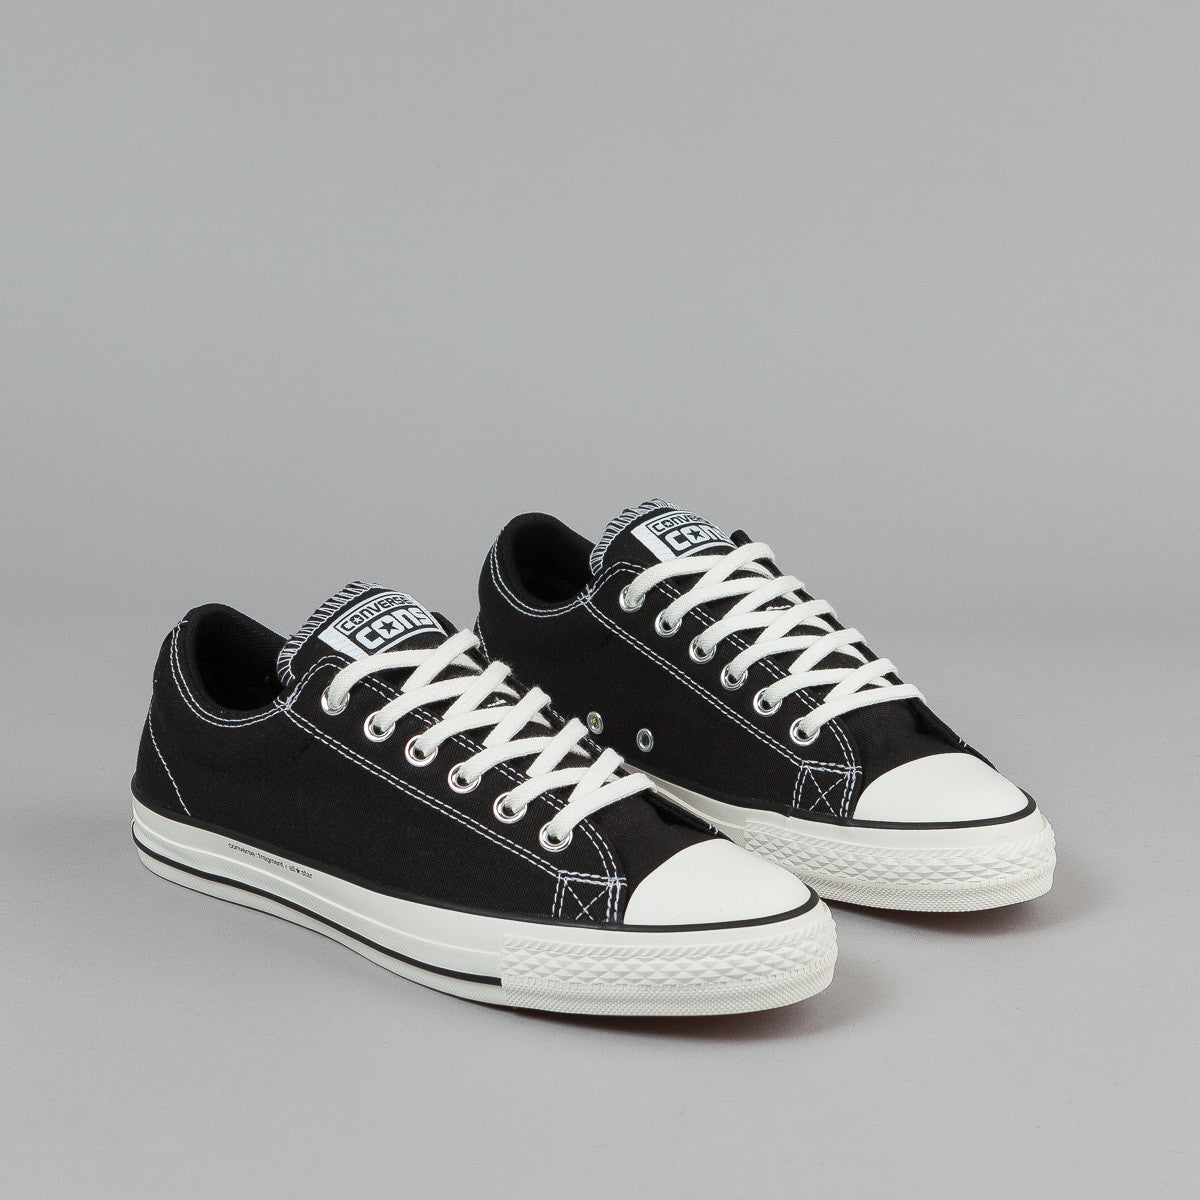 Converse X Fragment CTS OX Shoes - Black